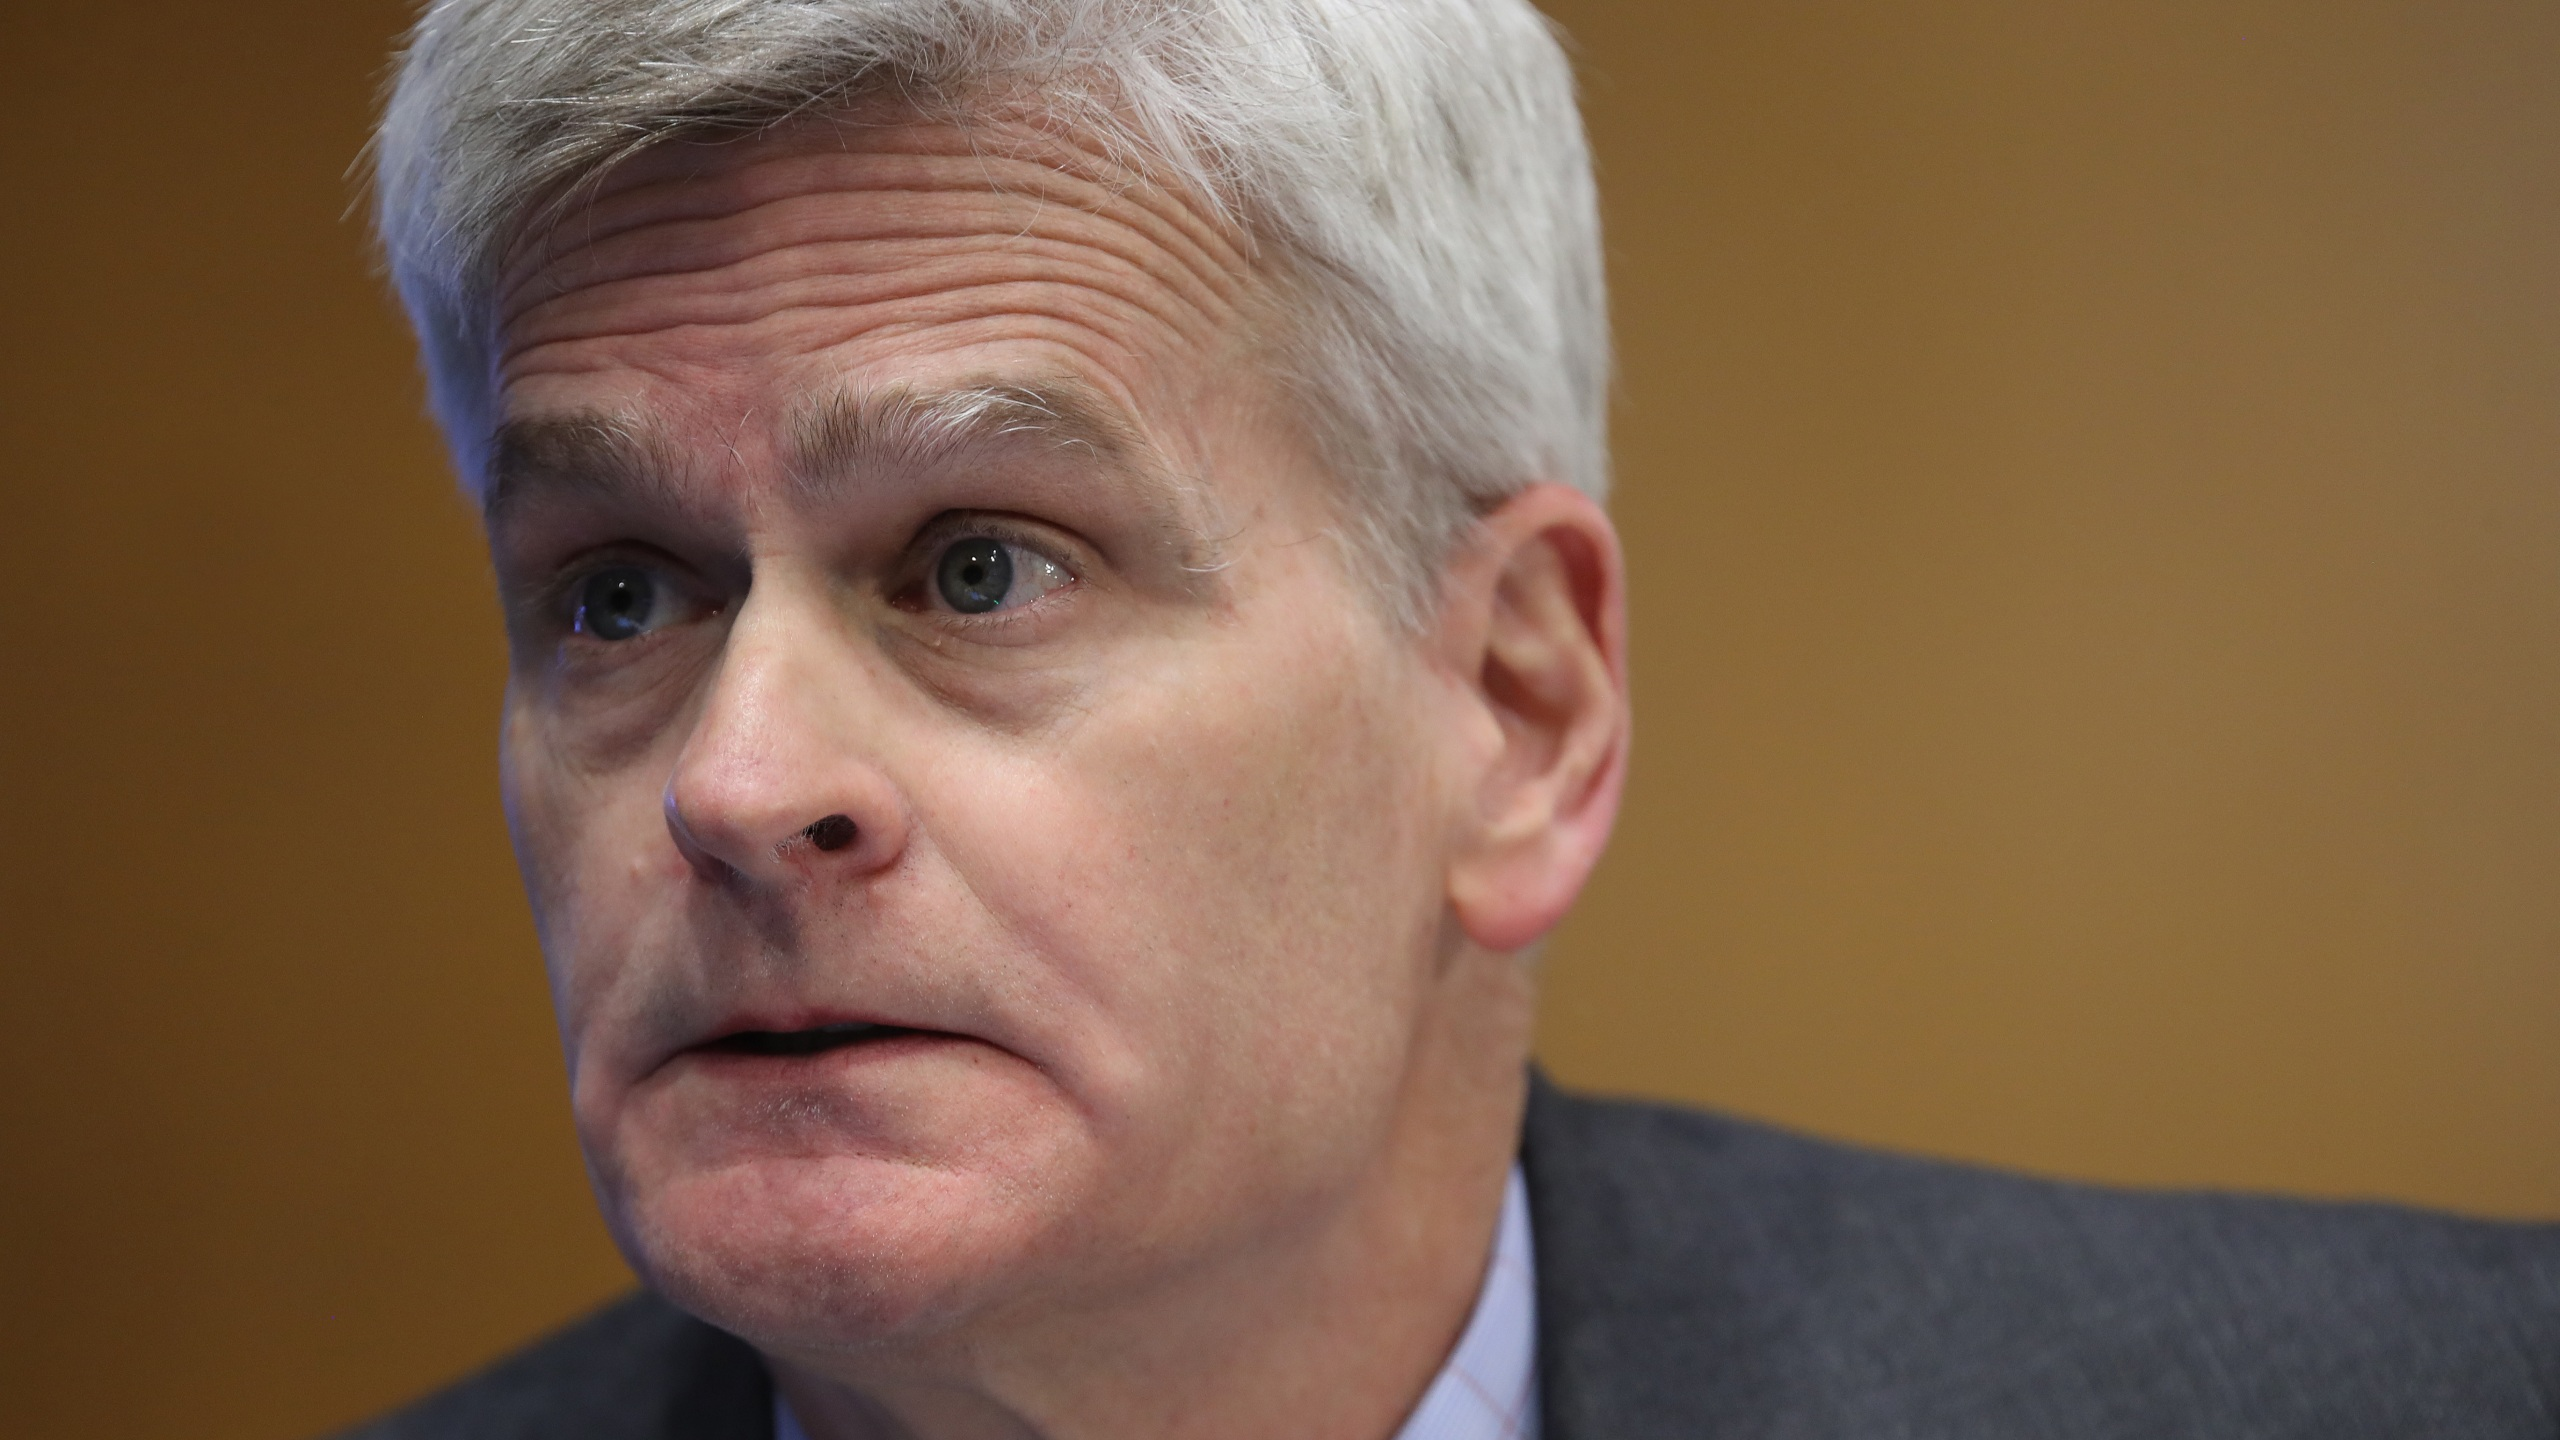 Sen. Bill Cassidy (R-LA) speaks during a Senate Health, Education, Labor and Pensions Committee hearing on Capitol Hill on May 12, 2020. (Win McNamee/Getty Images)